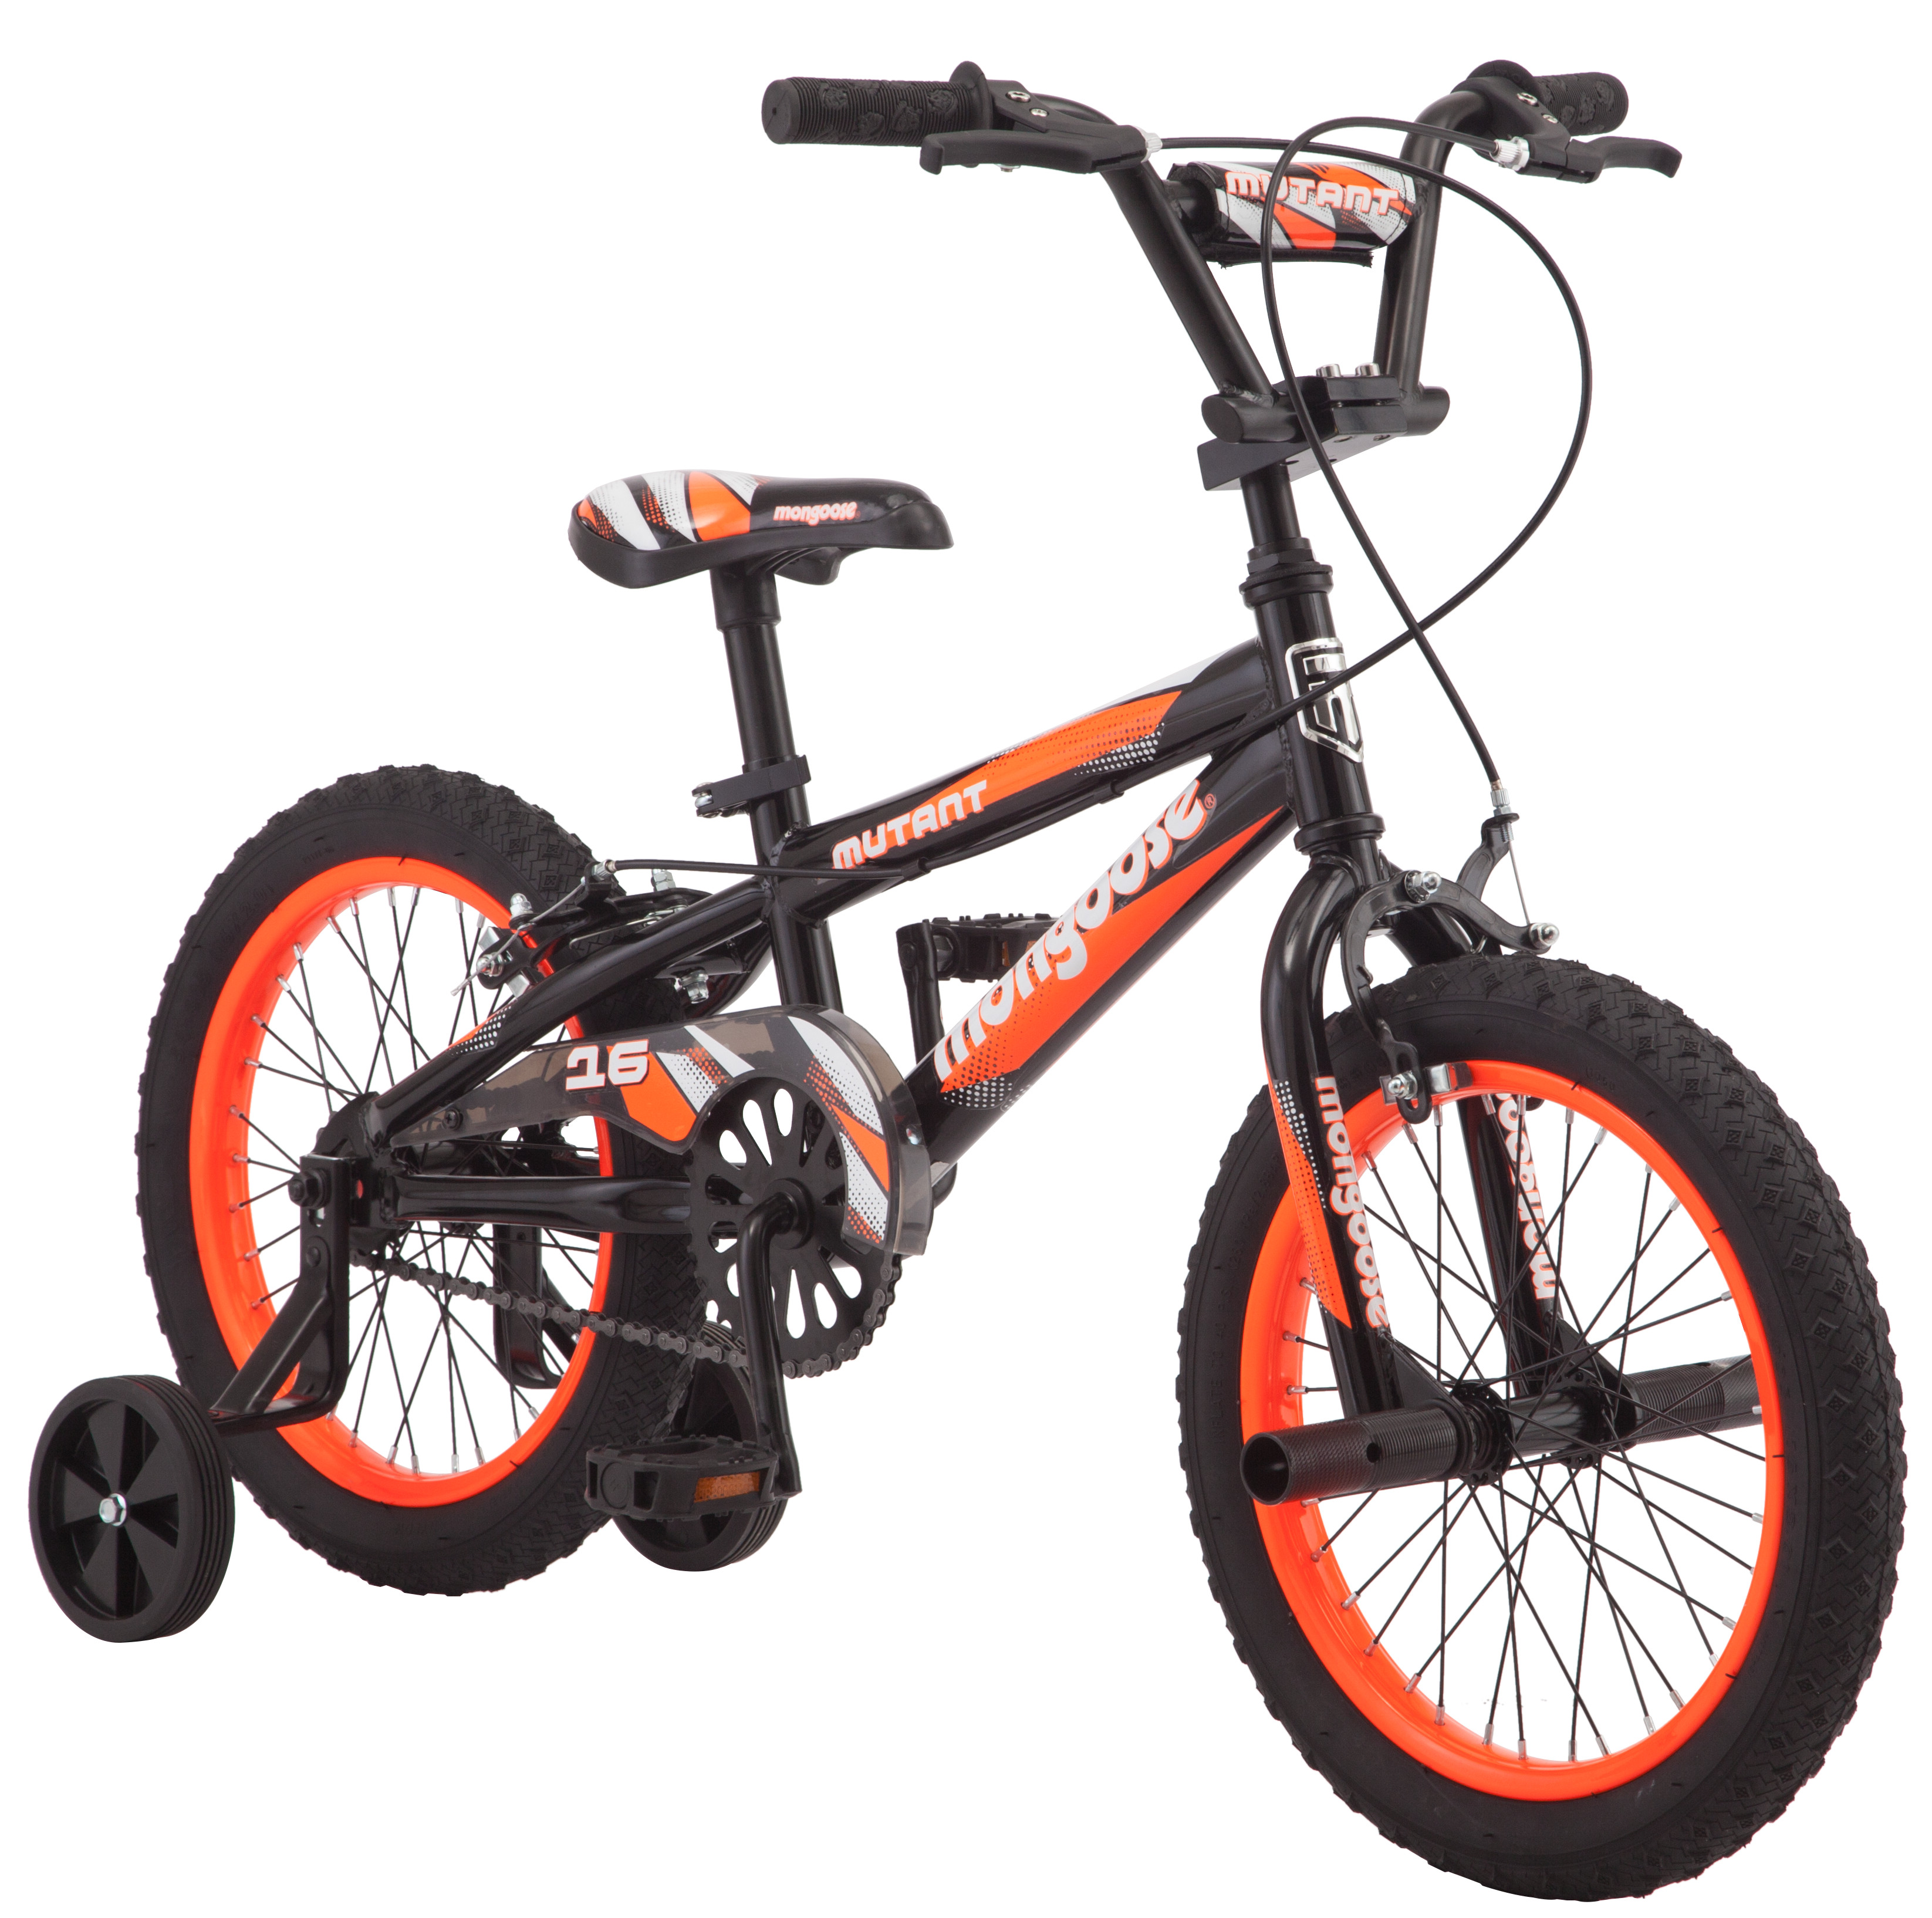 "16"" Mongoose Mutant Boys' Bicycle, Black & Orange"